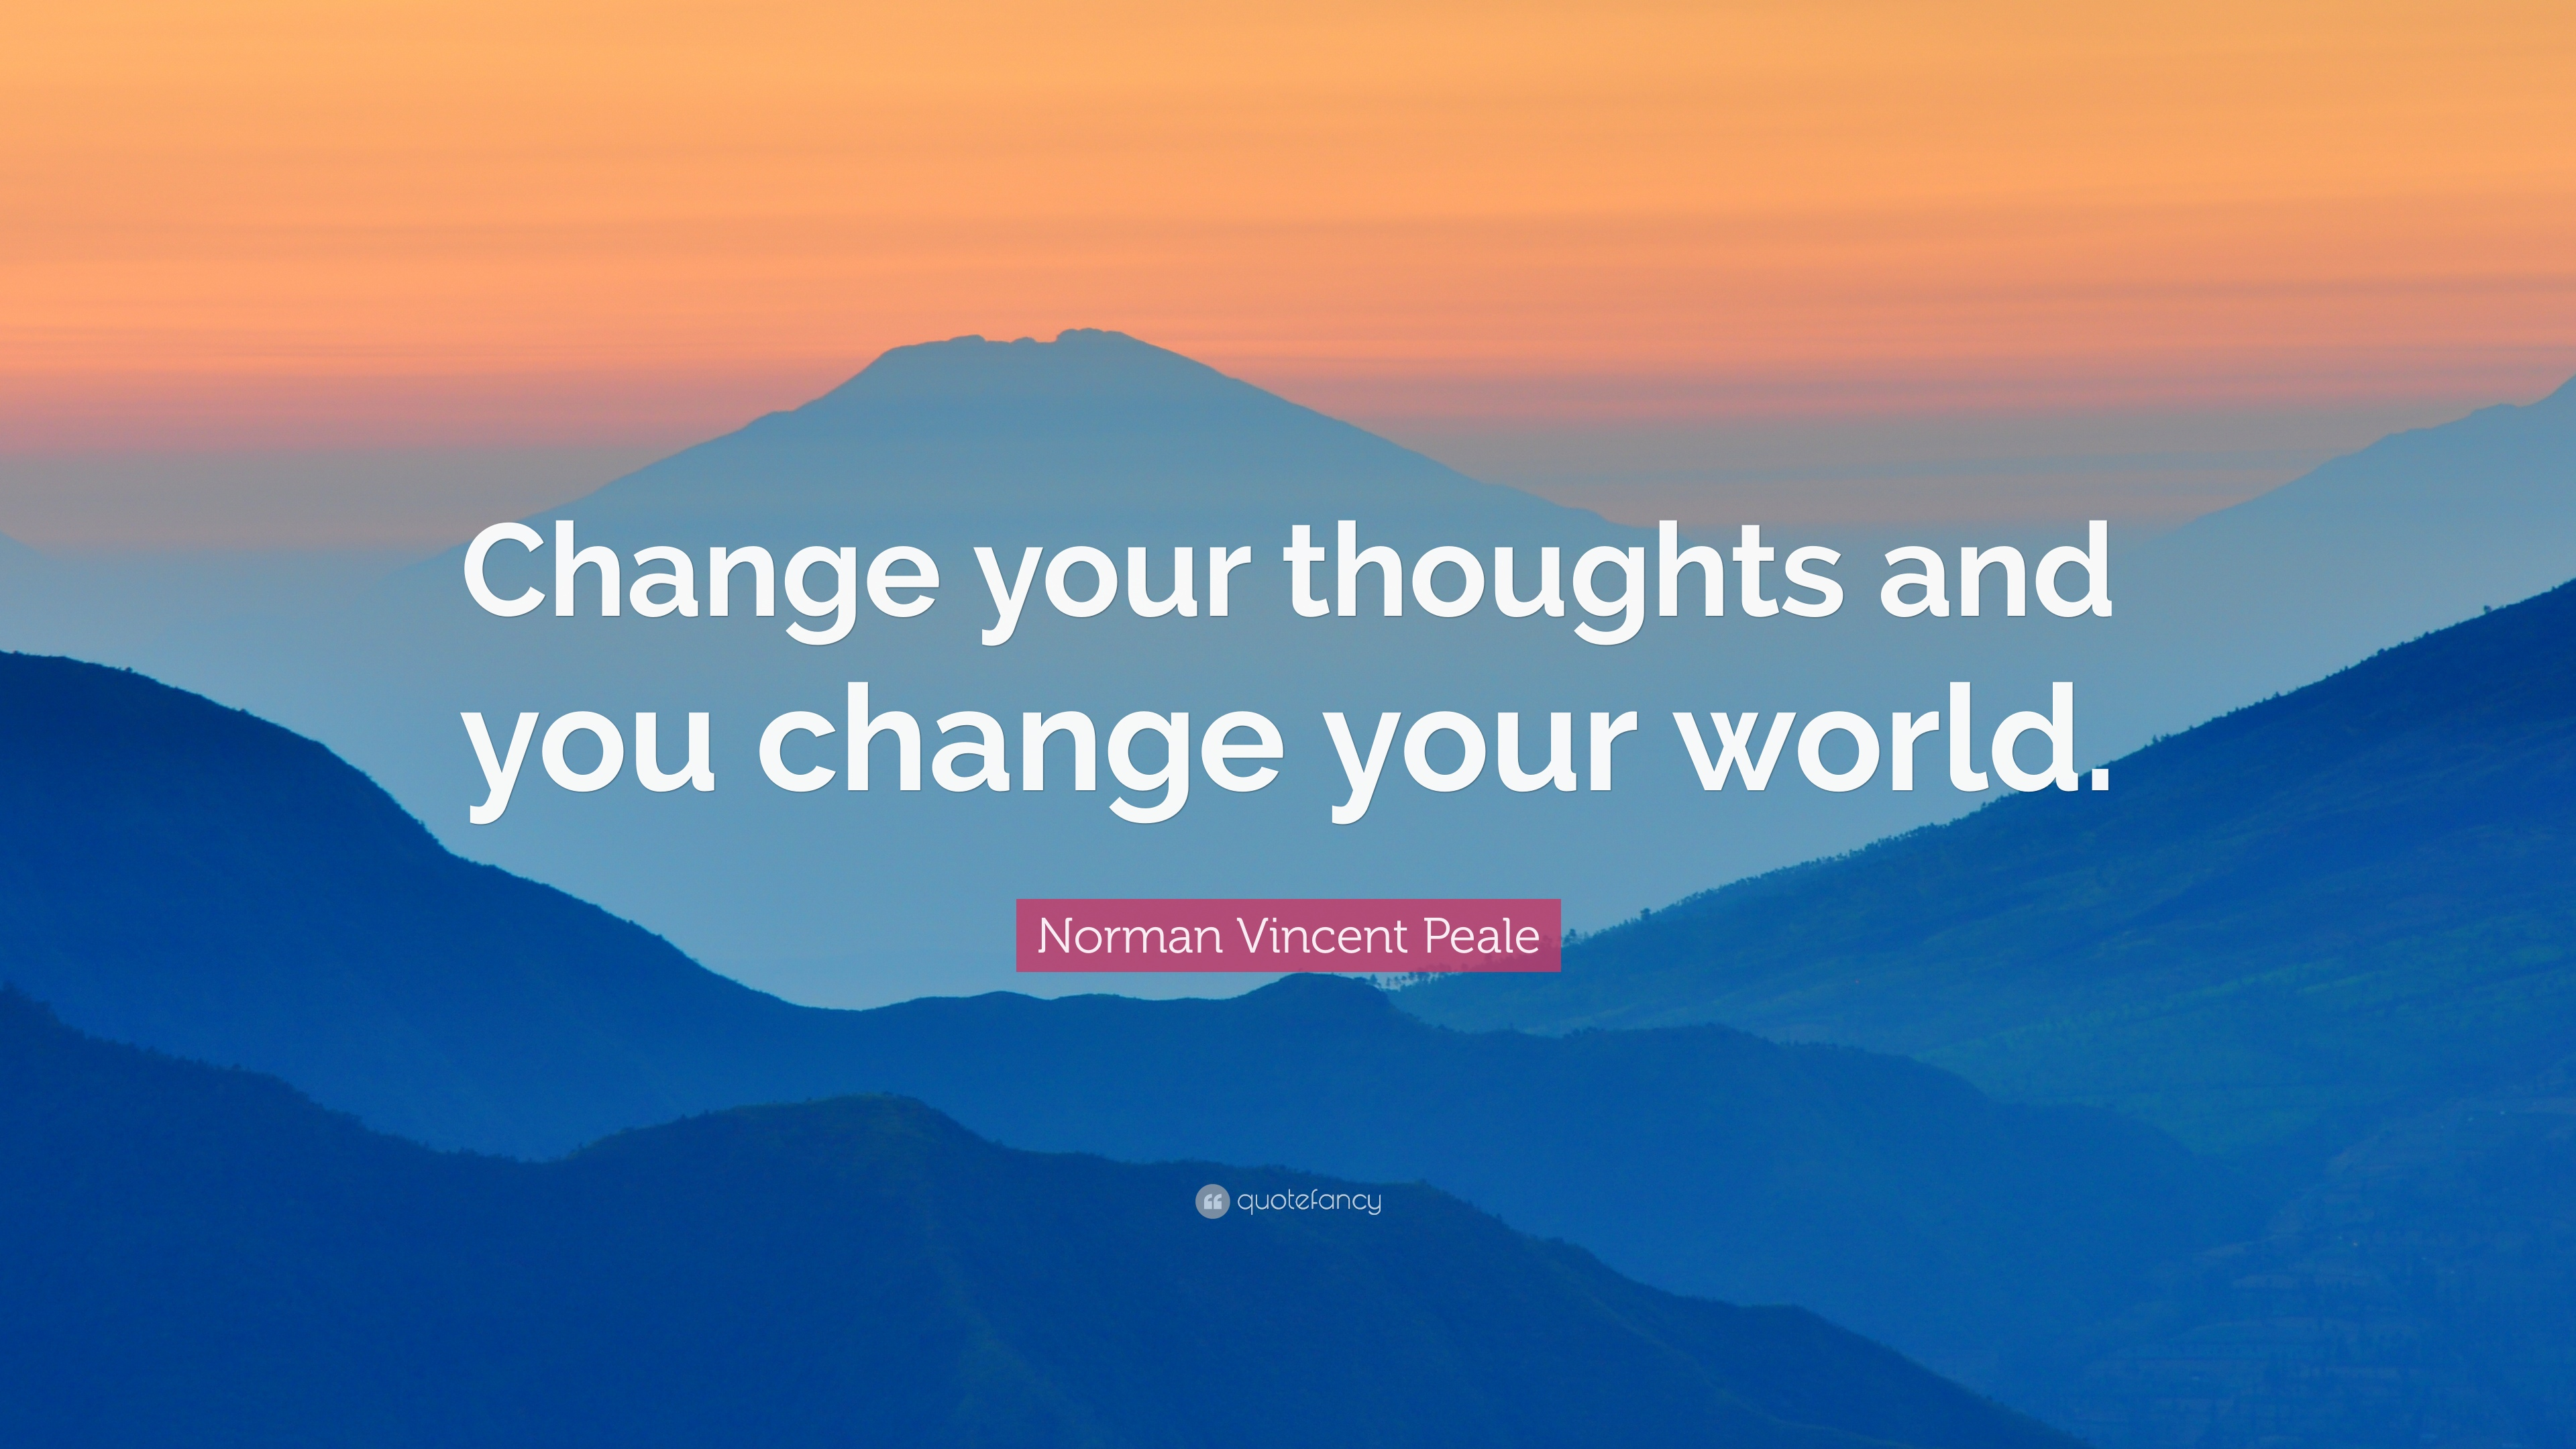 Superb Norman Vincent Peale Quote: U201cChange Your Thoughts And You Change Your  World.u201d